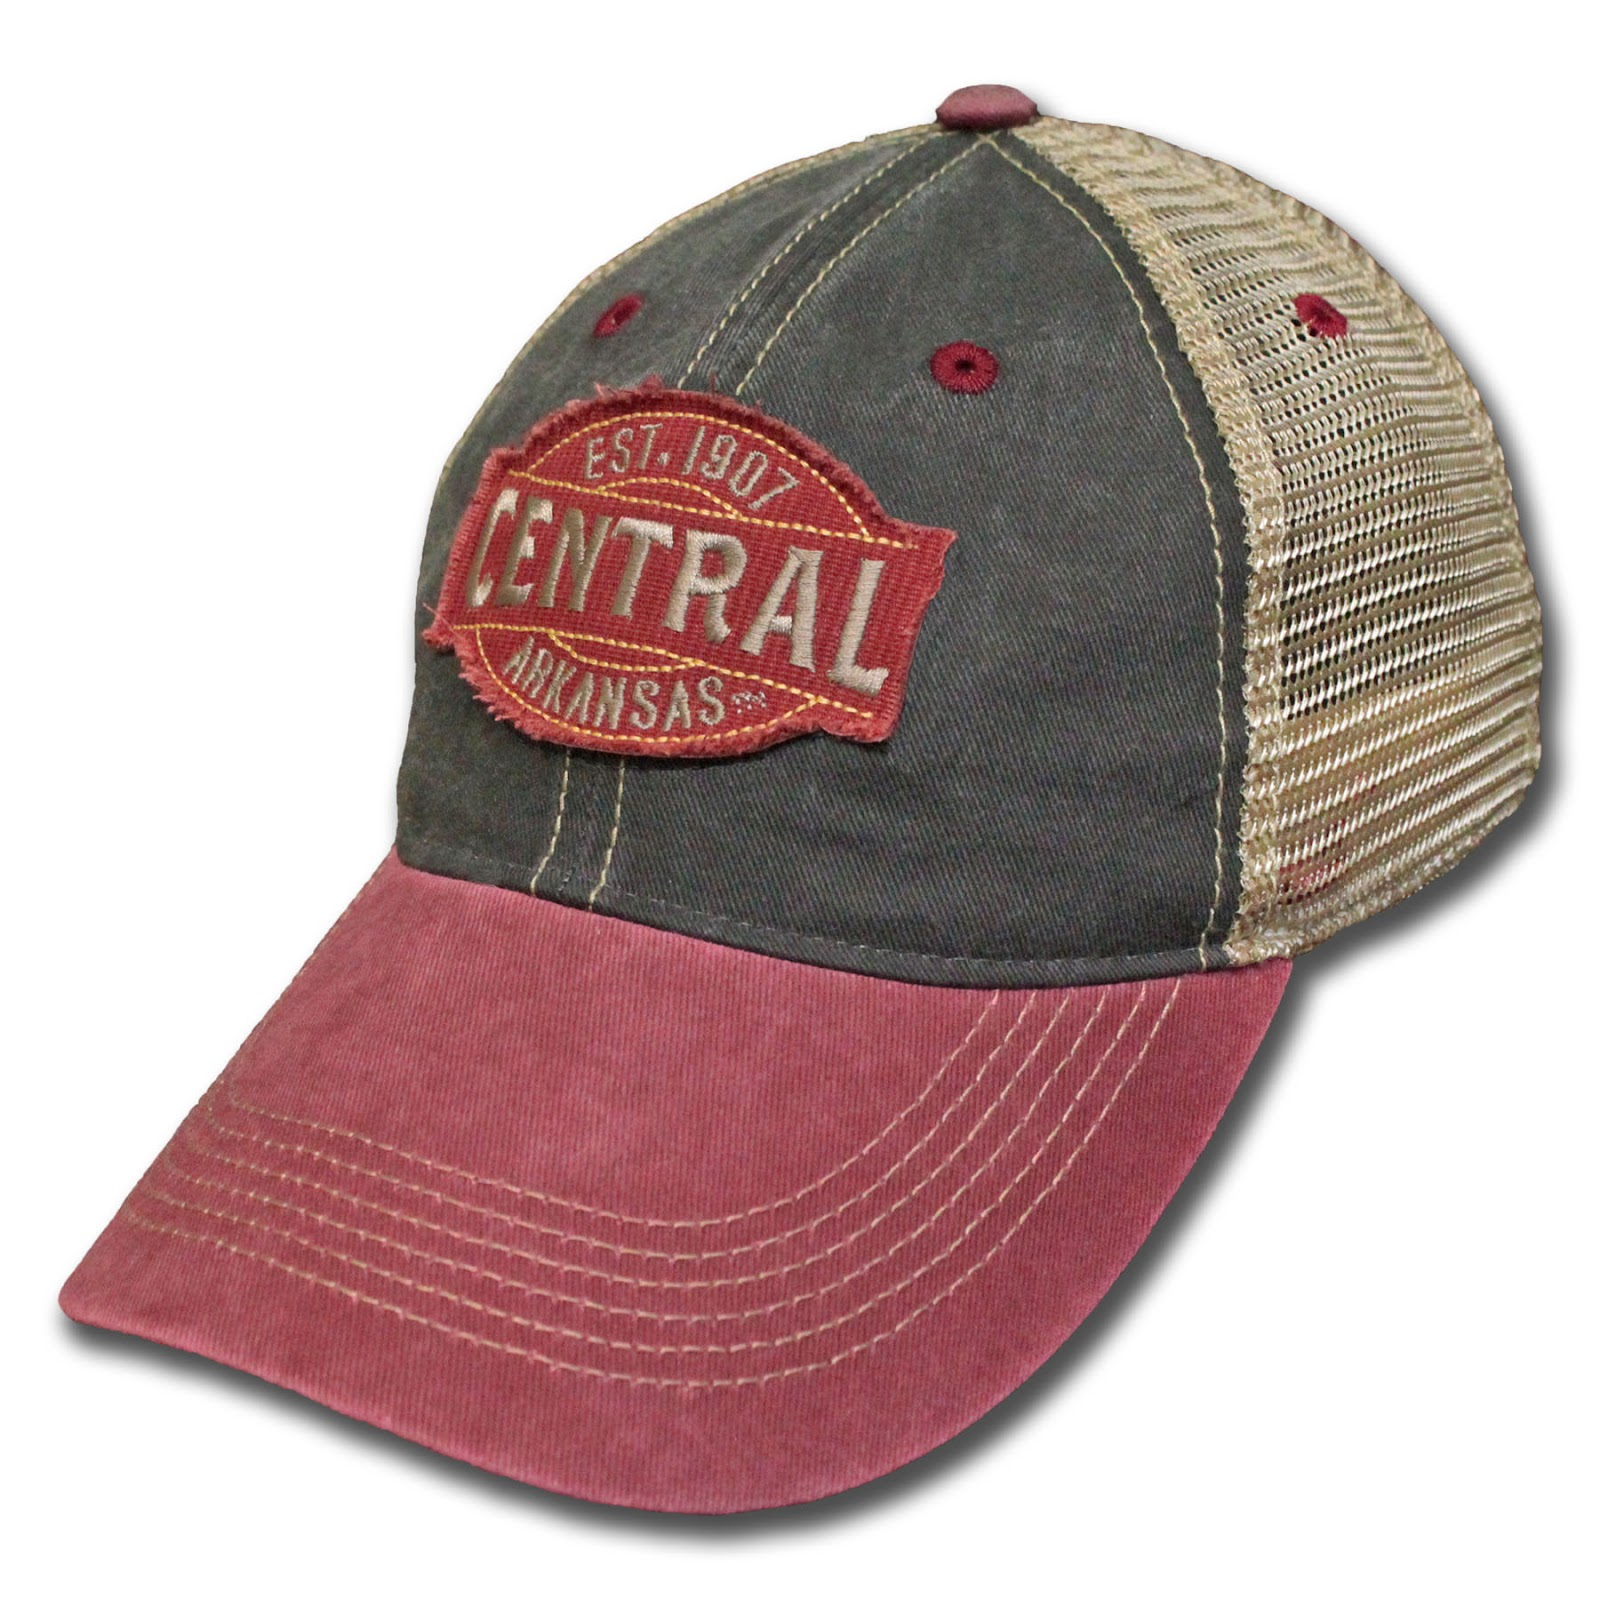 Central Legend Vintage Wash Trucker Cap